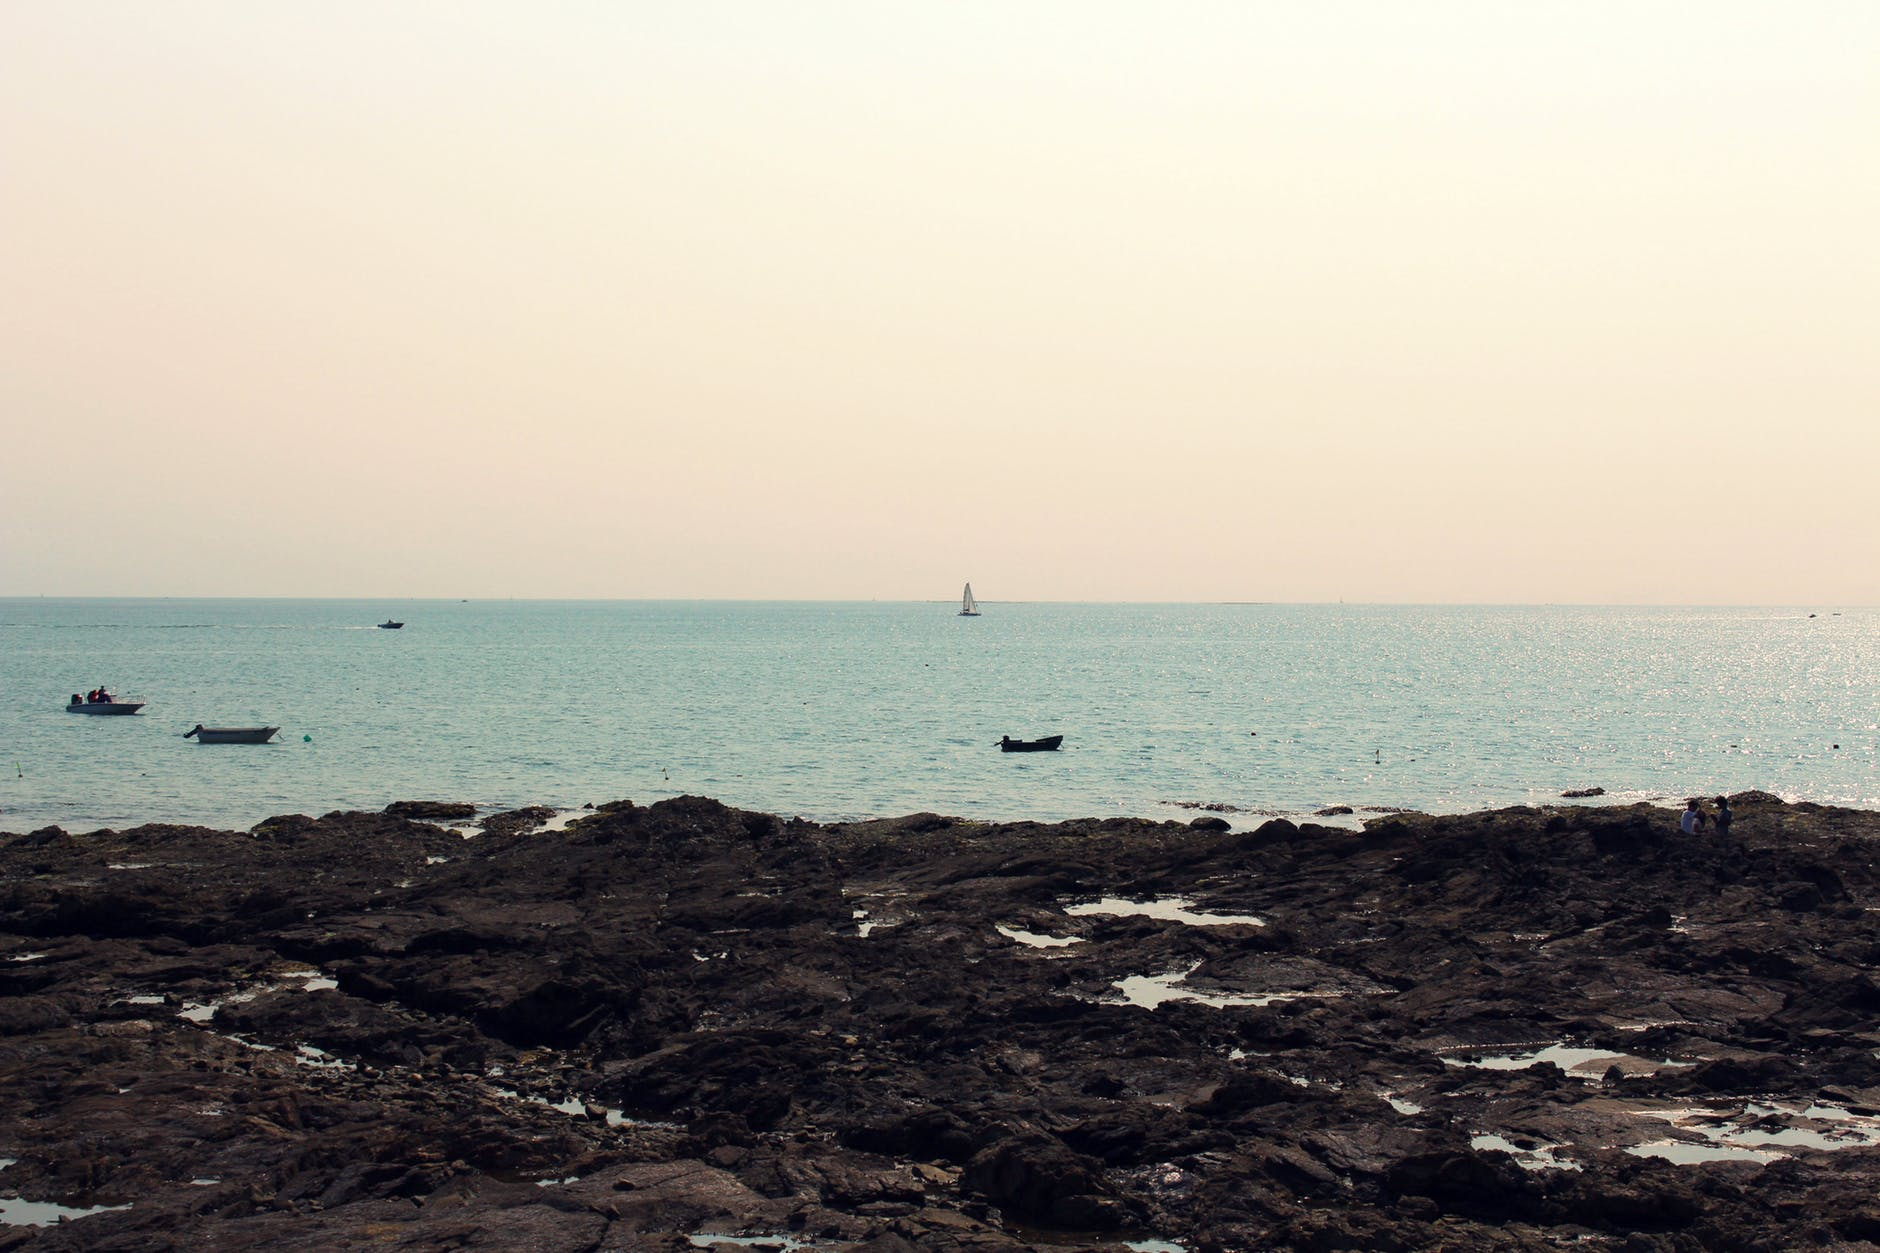 photograph of a rocky beach with sailboats in the distance